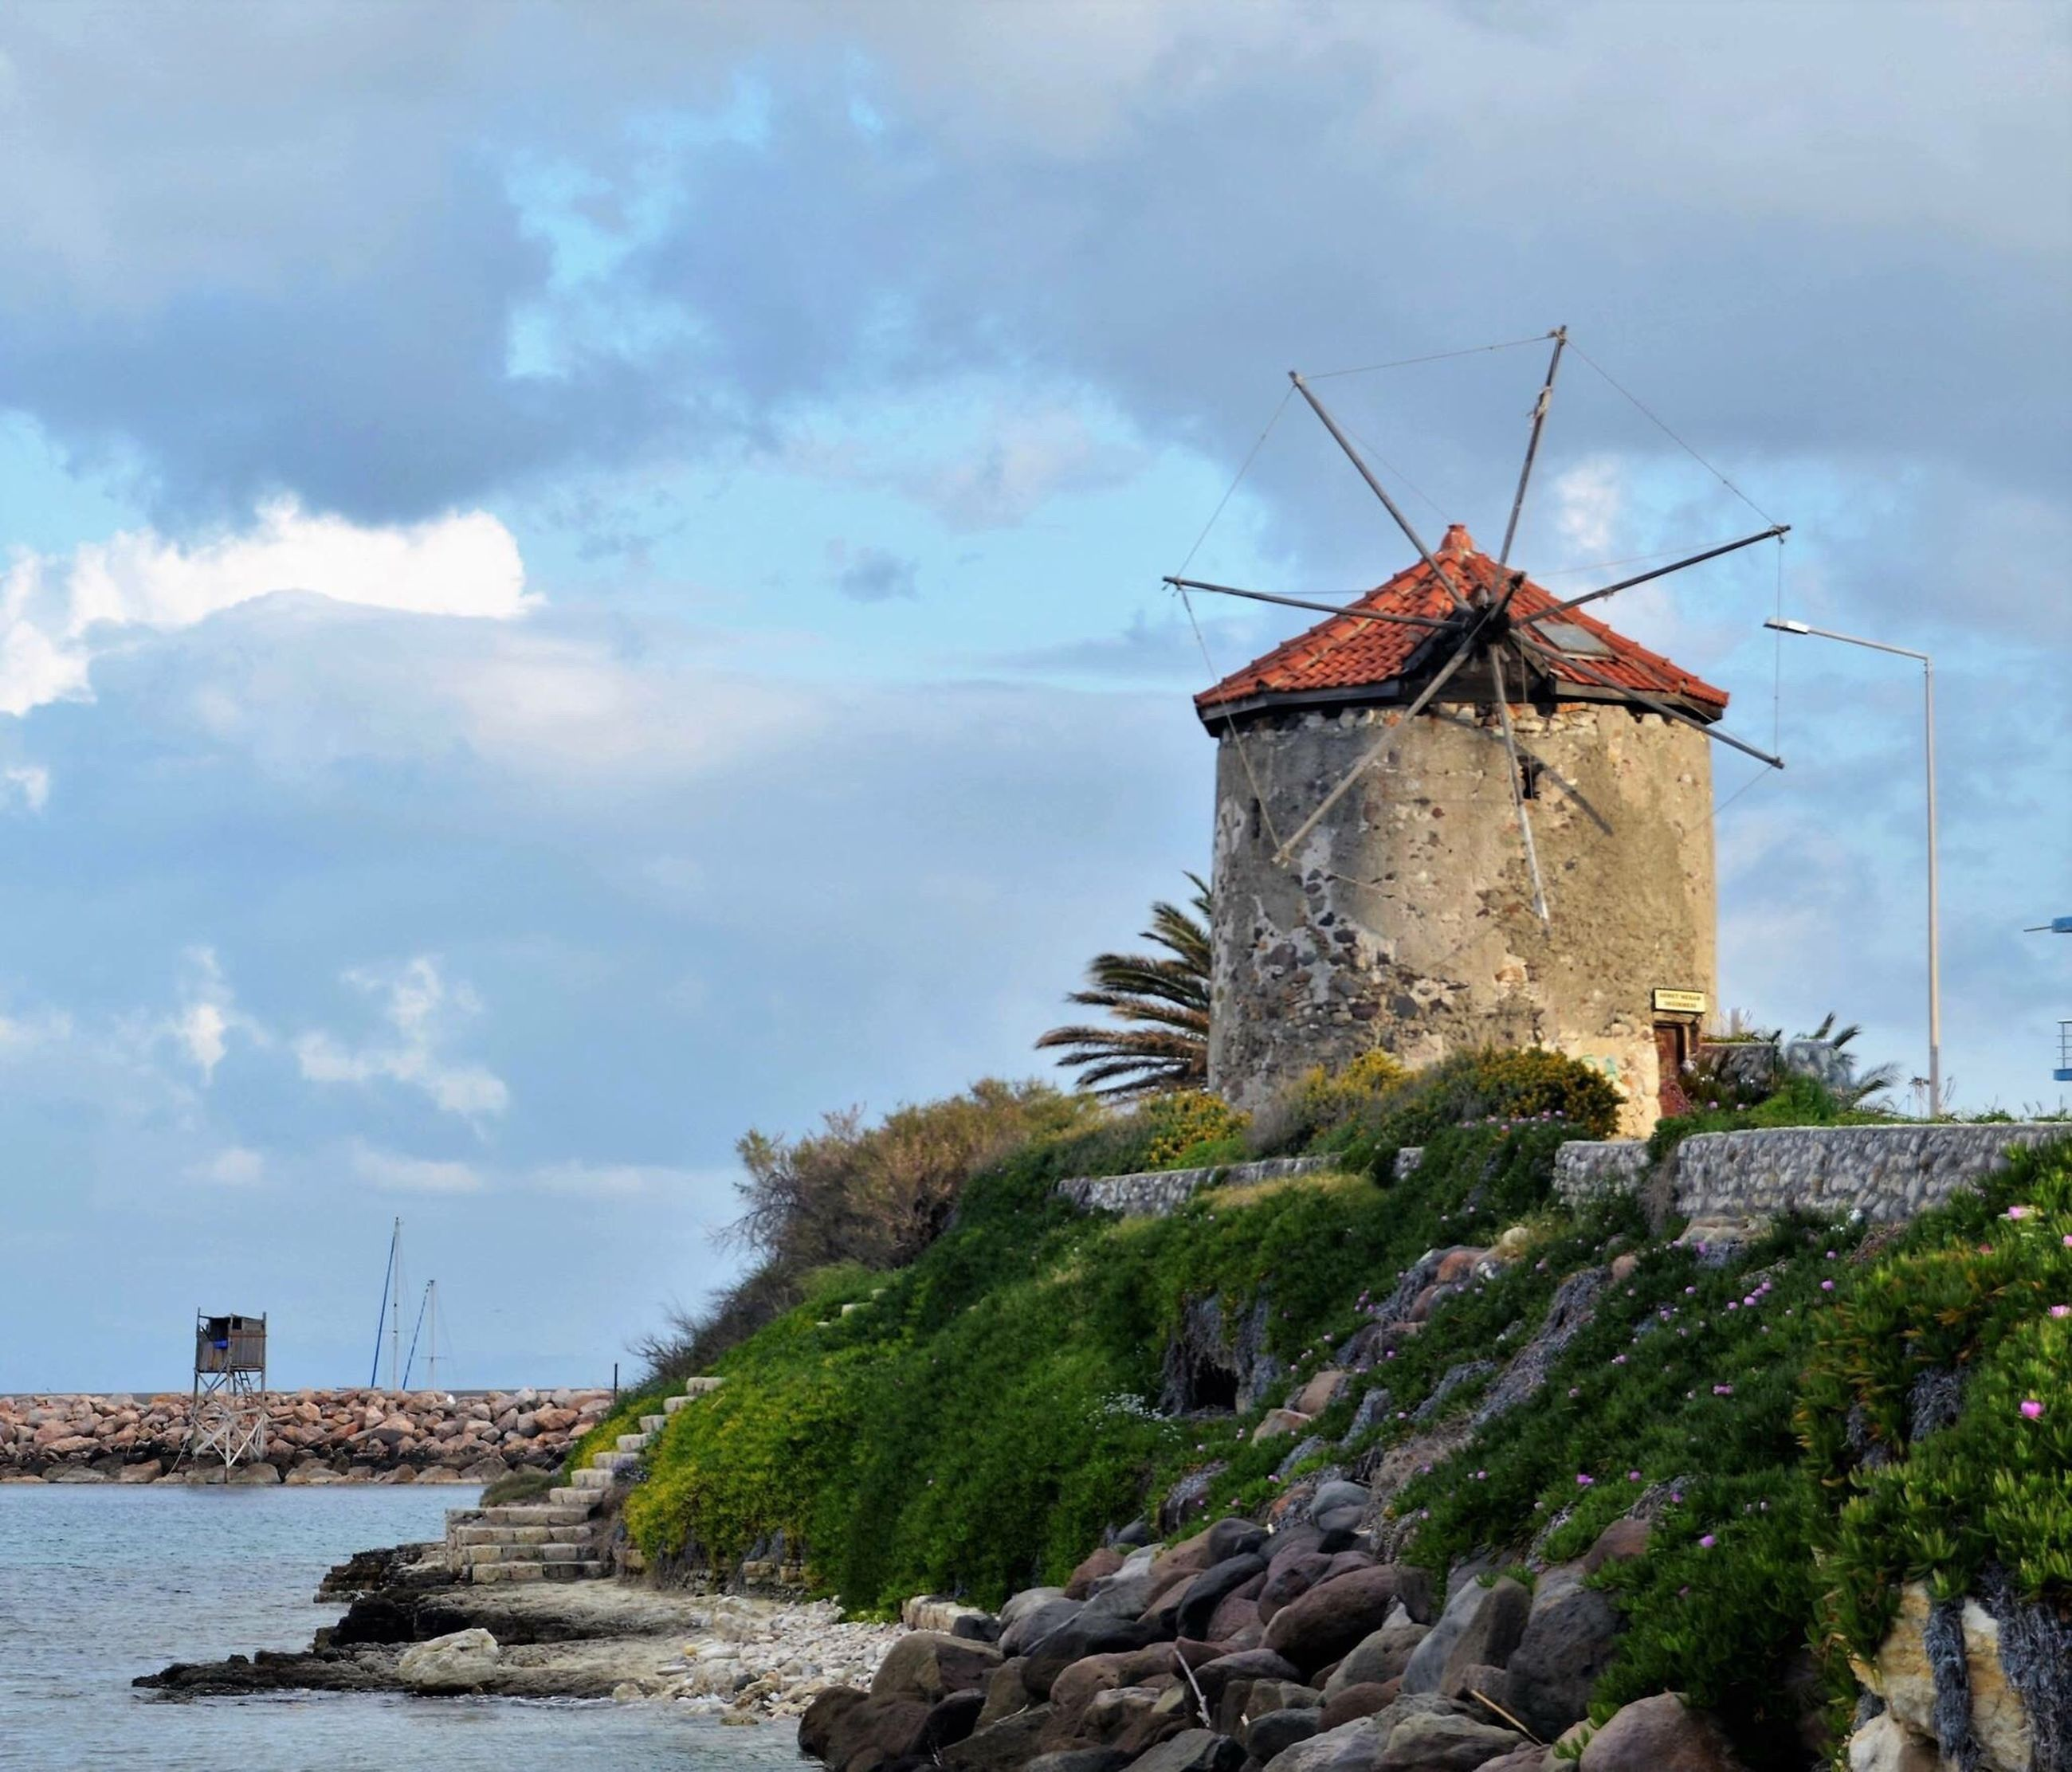 architecture, windmill, water, built structure, nature, building exterior, wind power, sky, environmental conservation, sea, cloud - sky, no people, wind turbine, beauty in nature, outdoors, tree, day, alternative energy